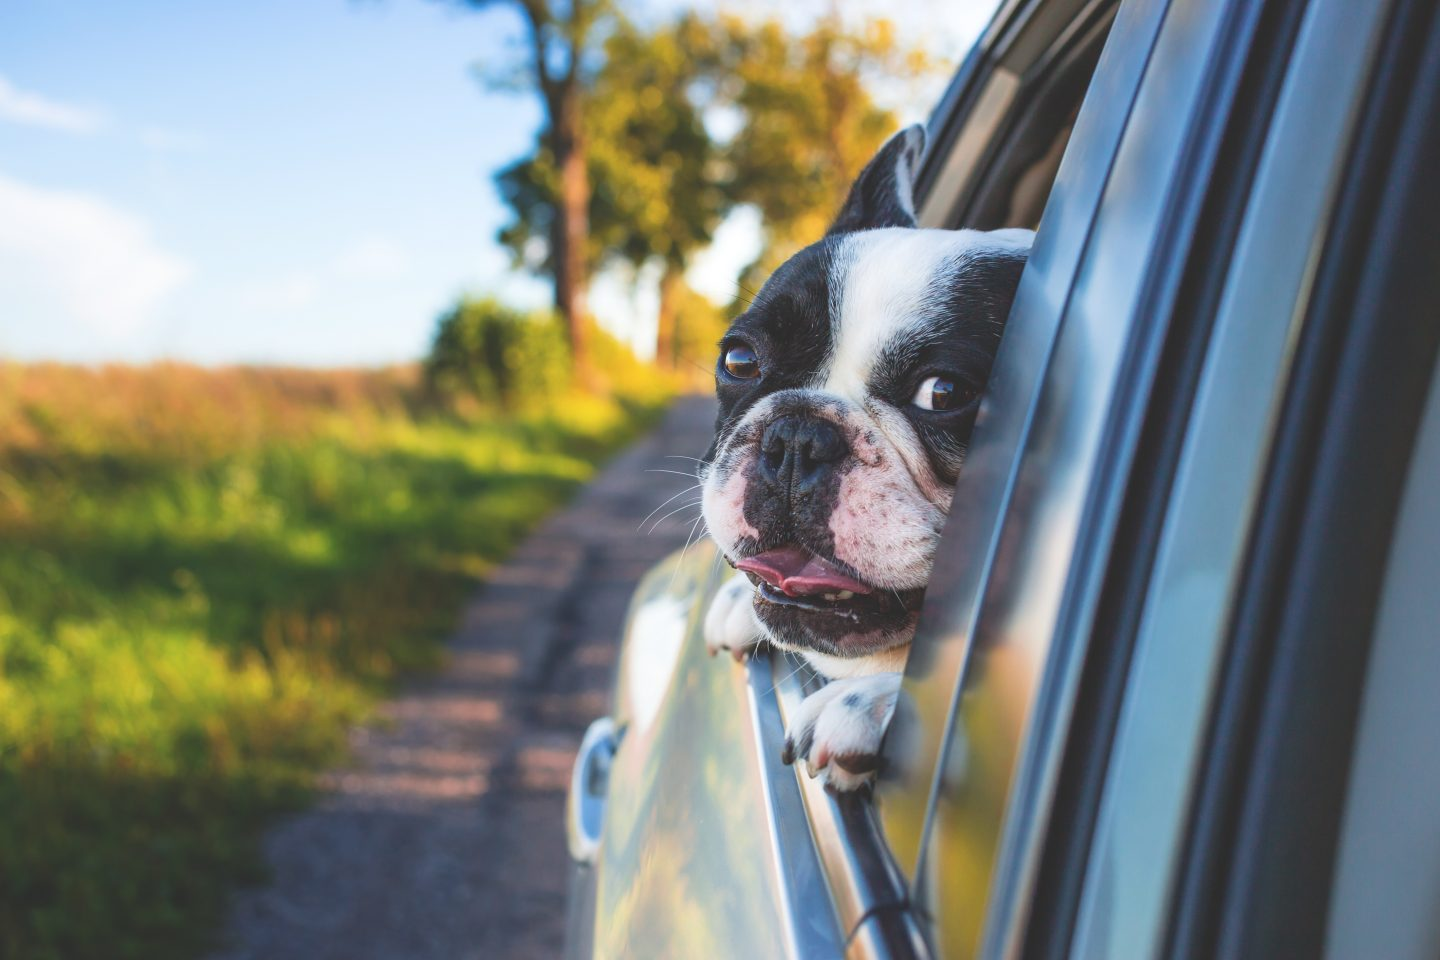 Fancy getting a dog? PART 1 – I've rented one for a week!